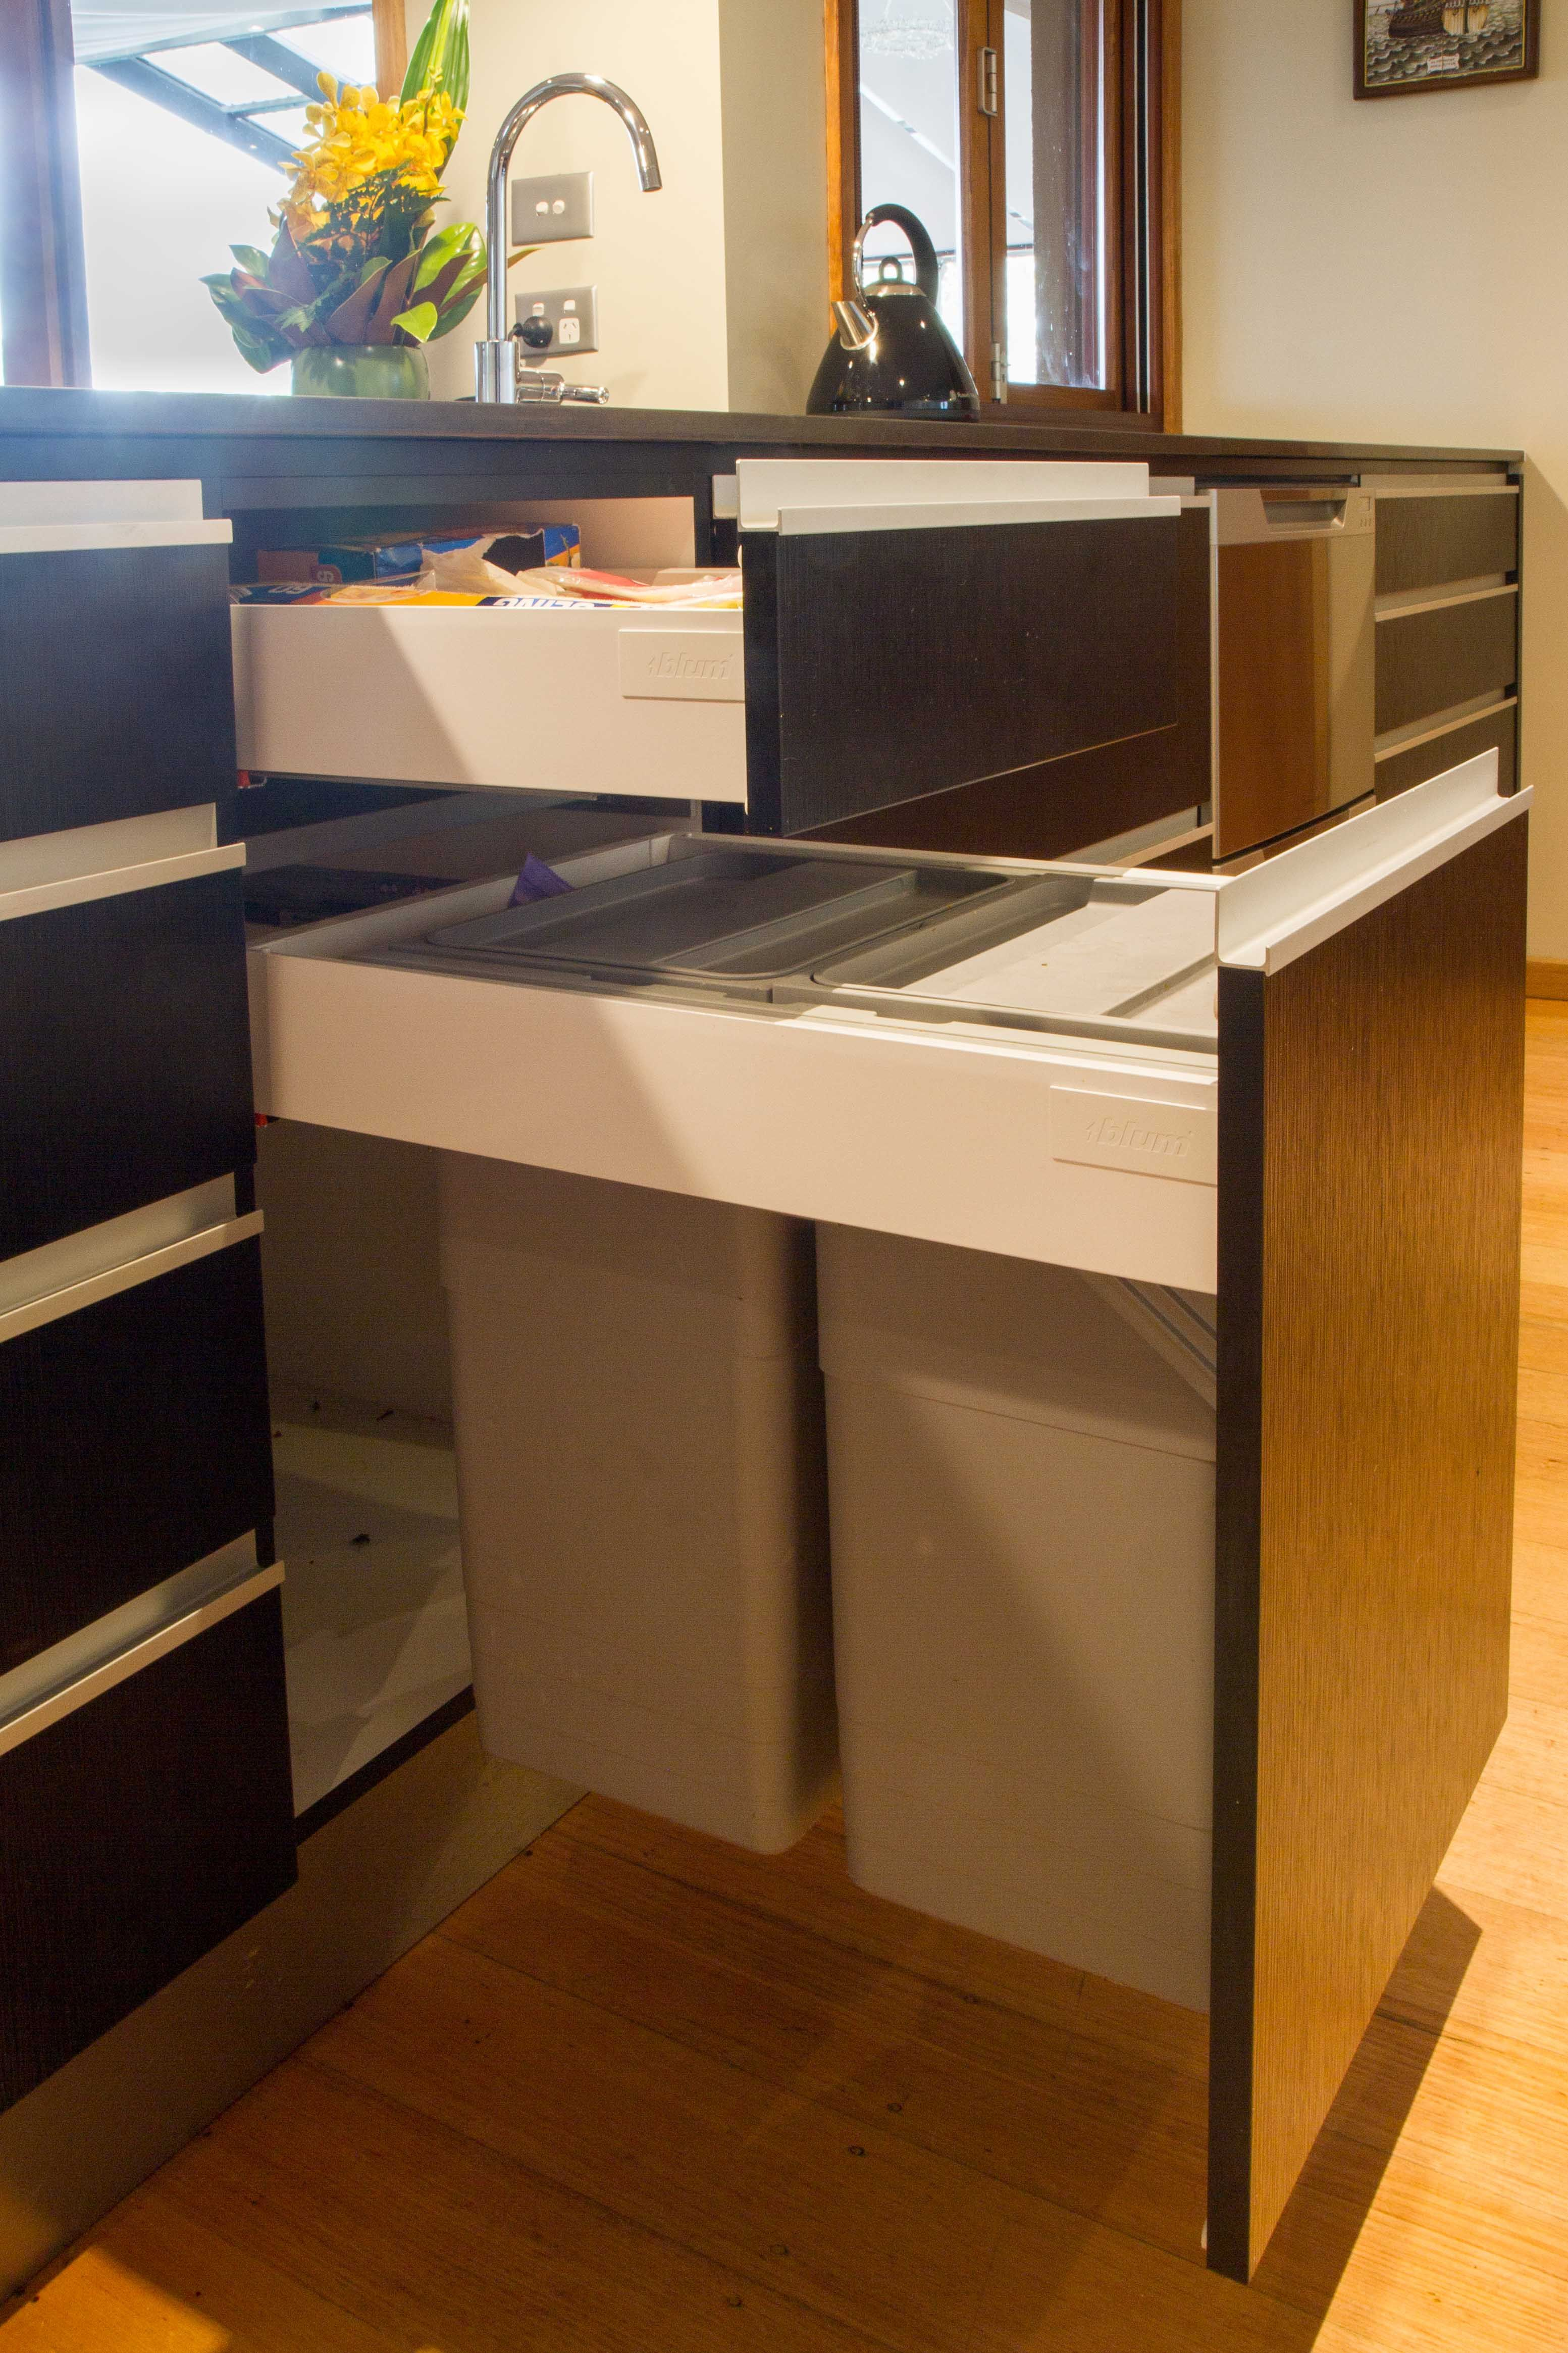 Bins built into drawers are almost genius! www